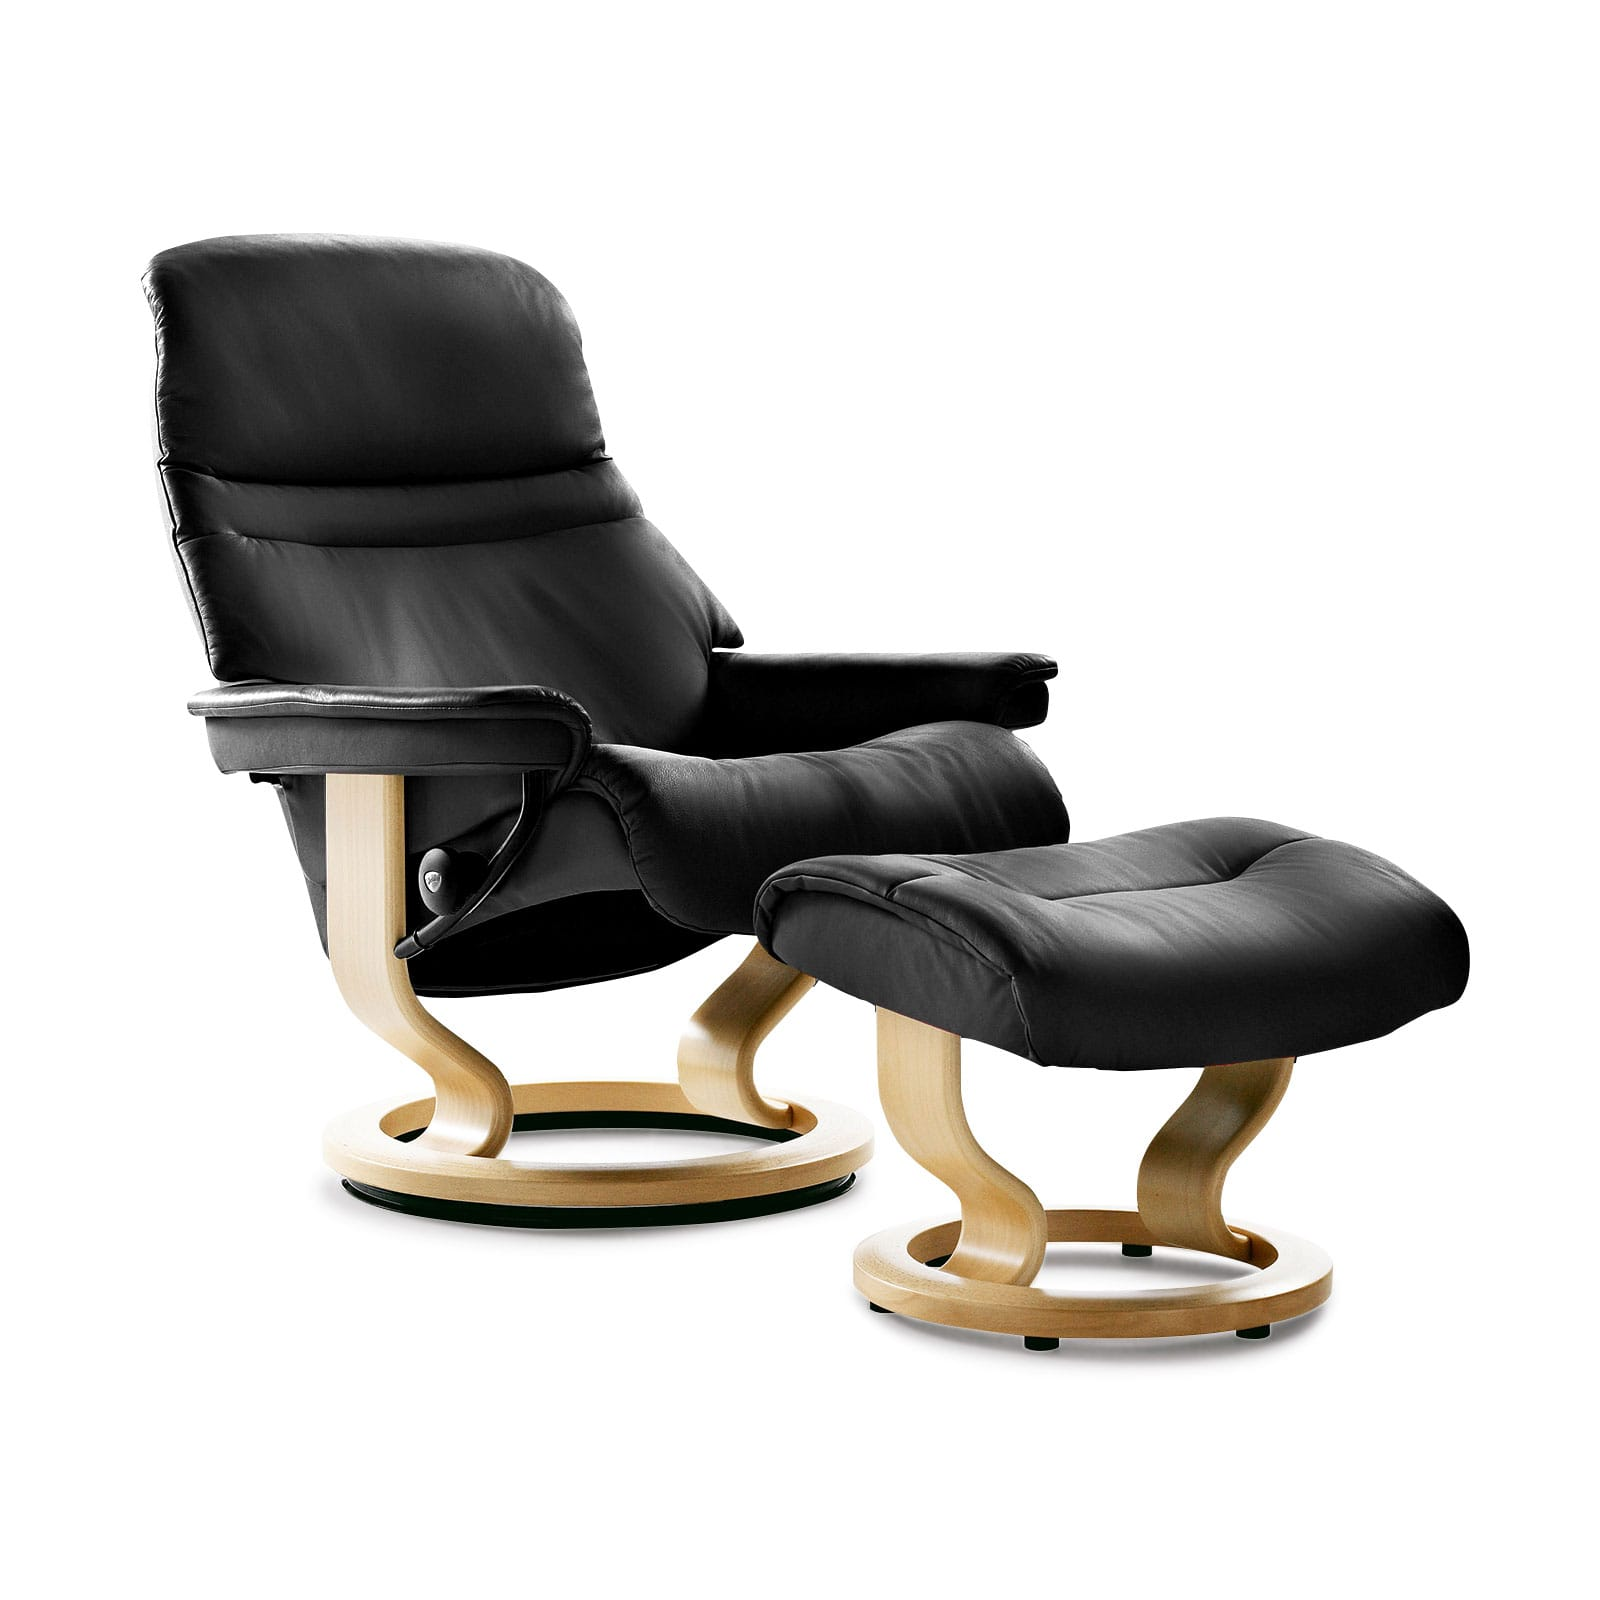 Stressless sessel sunrise m batick black mit hocker for Stressless sessel modelle